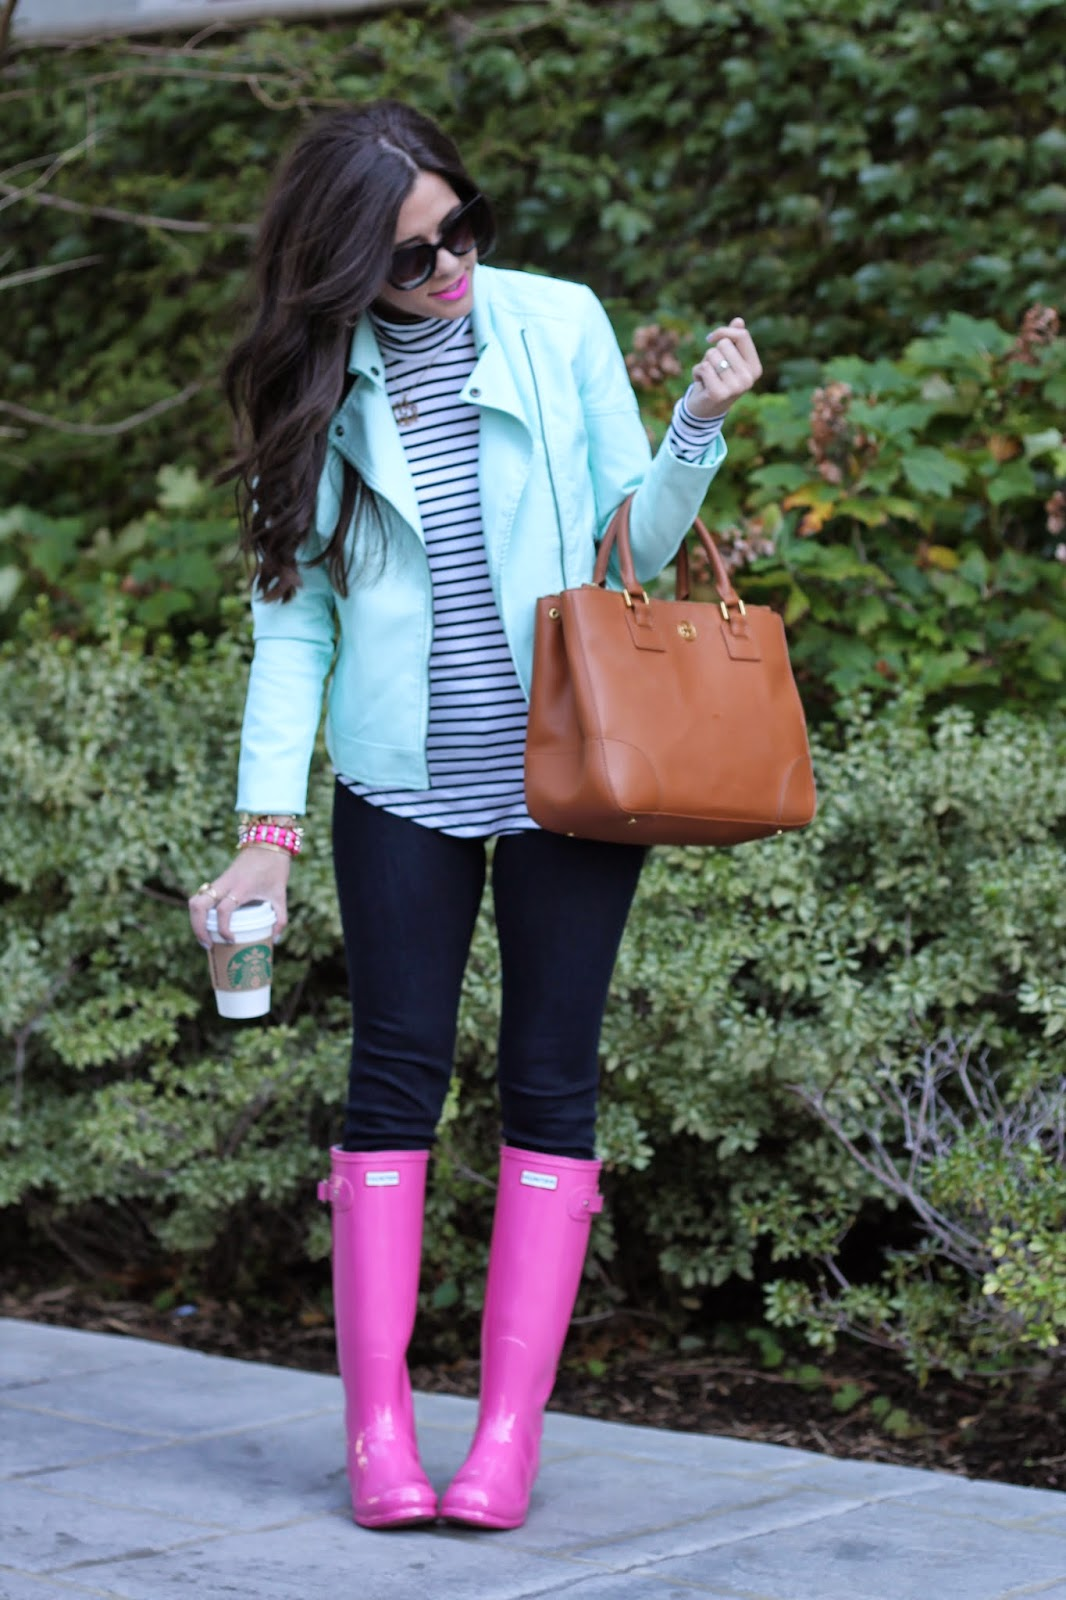 mint moto jacket, candy yum yum, jcrew, michael kors lexington, tory burch robinson tote, tory burch wallet, striped turtleneck, cat eye sunglasses, hot pink hunter boots, hunter boots, fall fashion, fall fashion pinterest, emily gemma, the sweetest thing blog, pink bracelets, rainy day fashion, hunters, pink hunters, pink wallet, tan bag